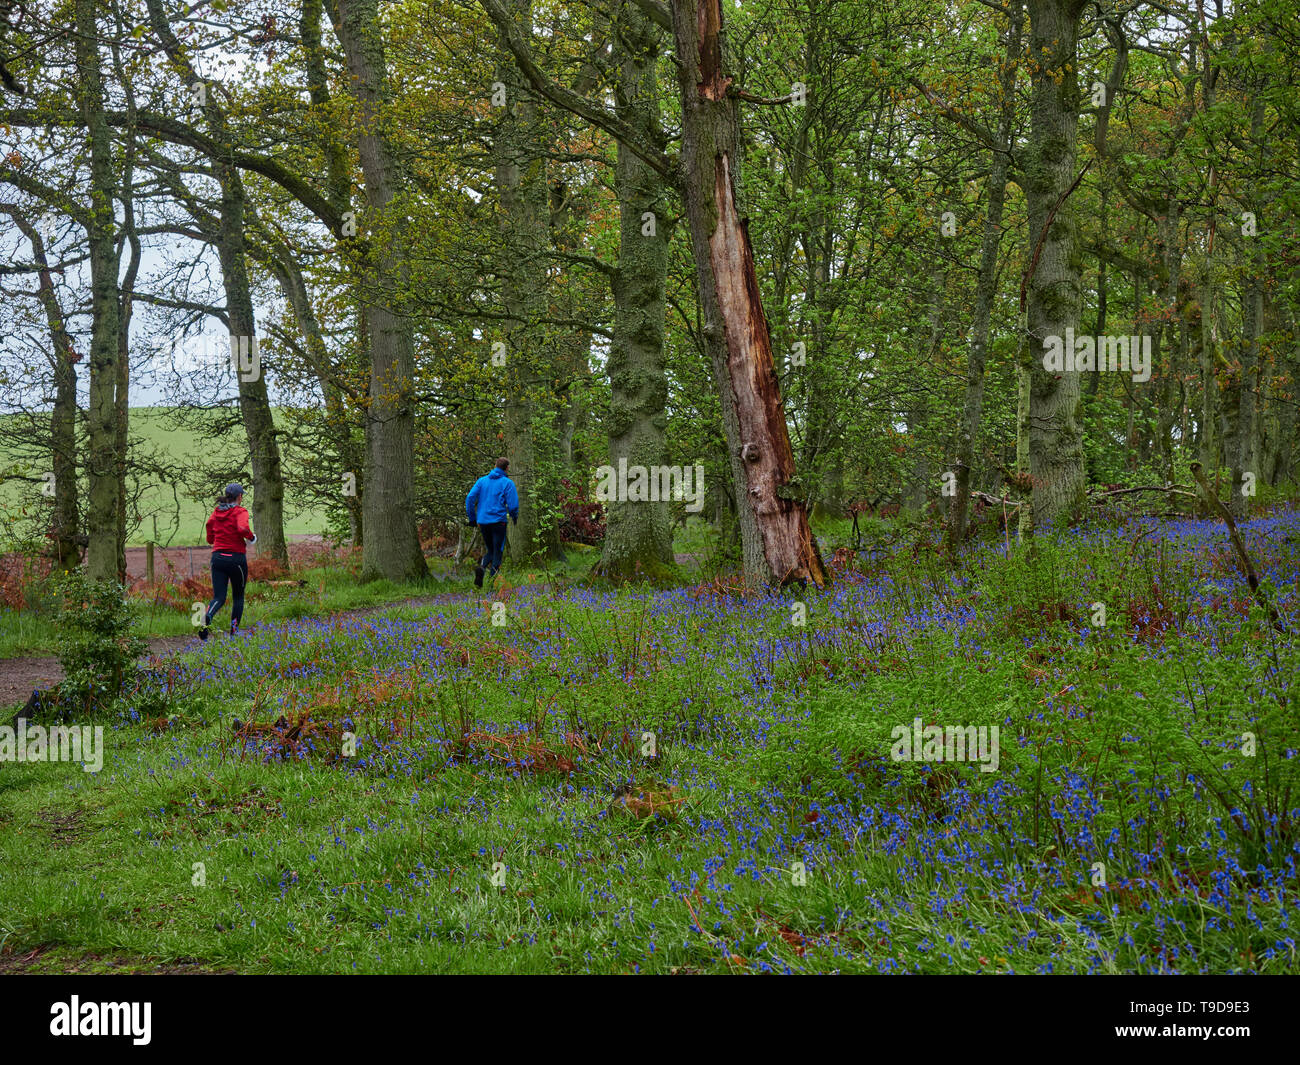 A Young Man and Woman running on a path through Darroch Woods, surrounded by Wild Bluebells. Perthshire, Scotland - Stock Image